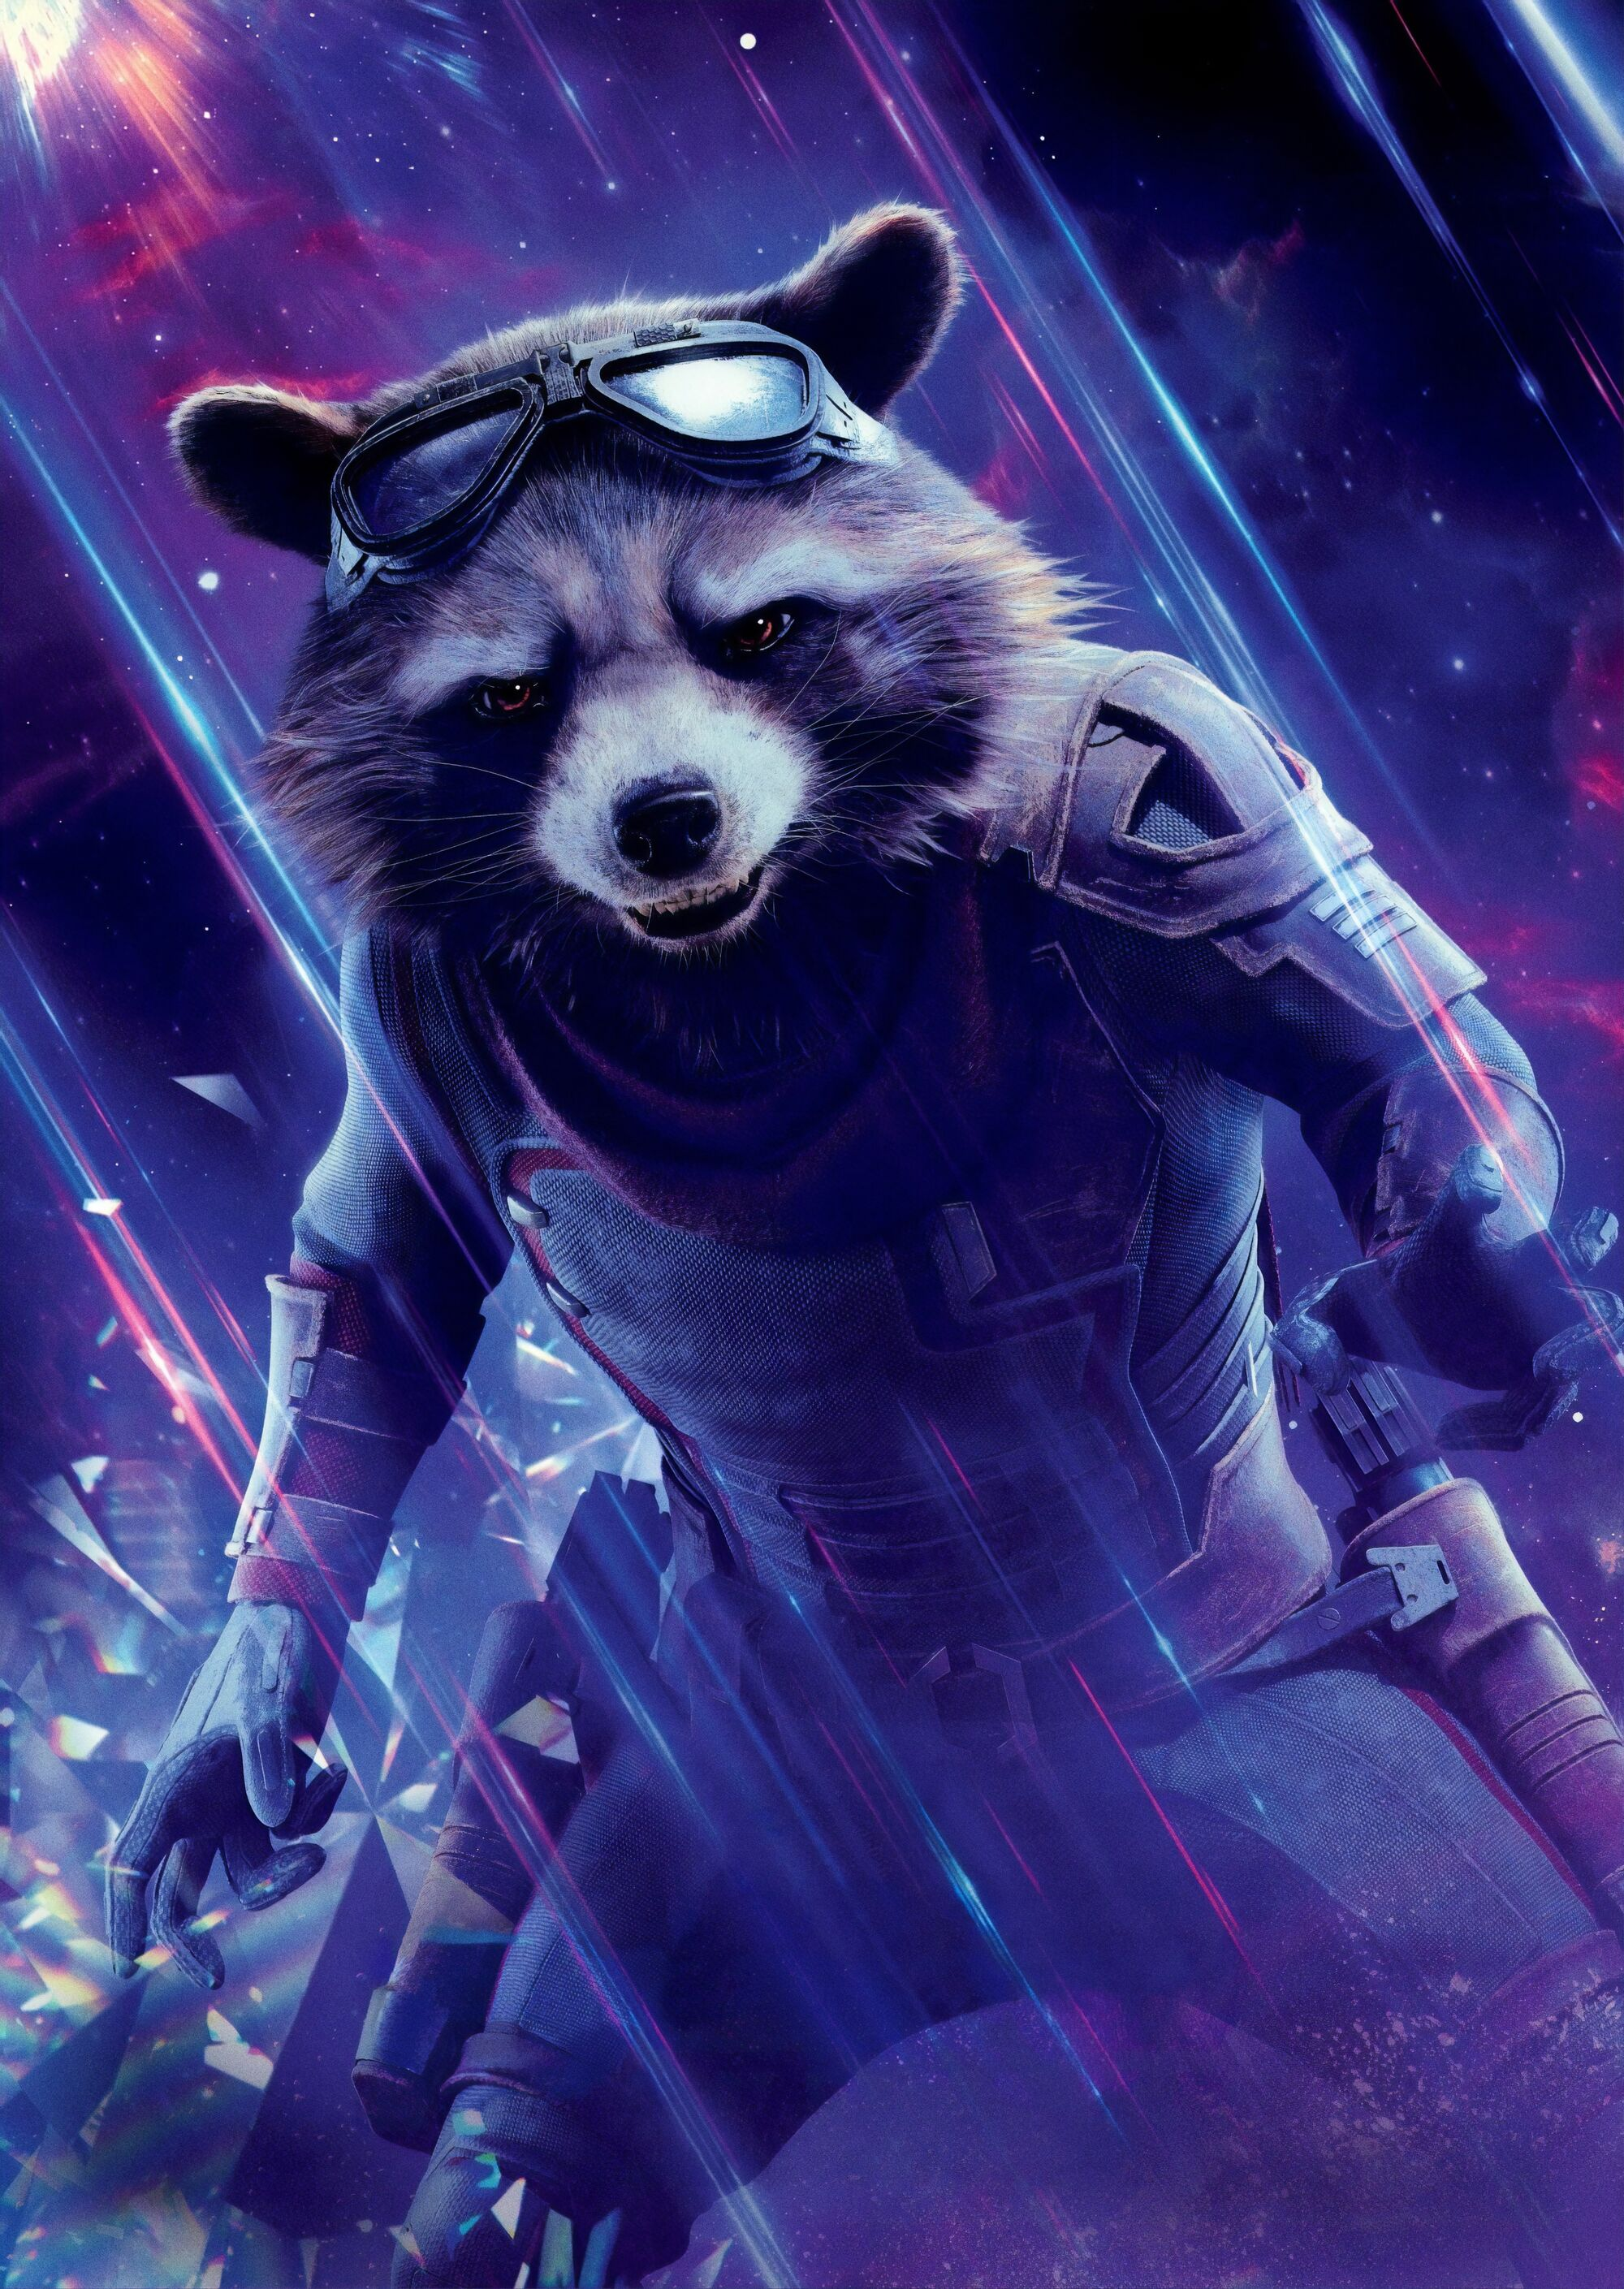 Rocket Raccoon | Marvel Cinematic Universe Wiki | FANDOM